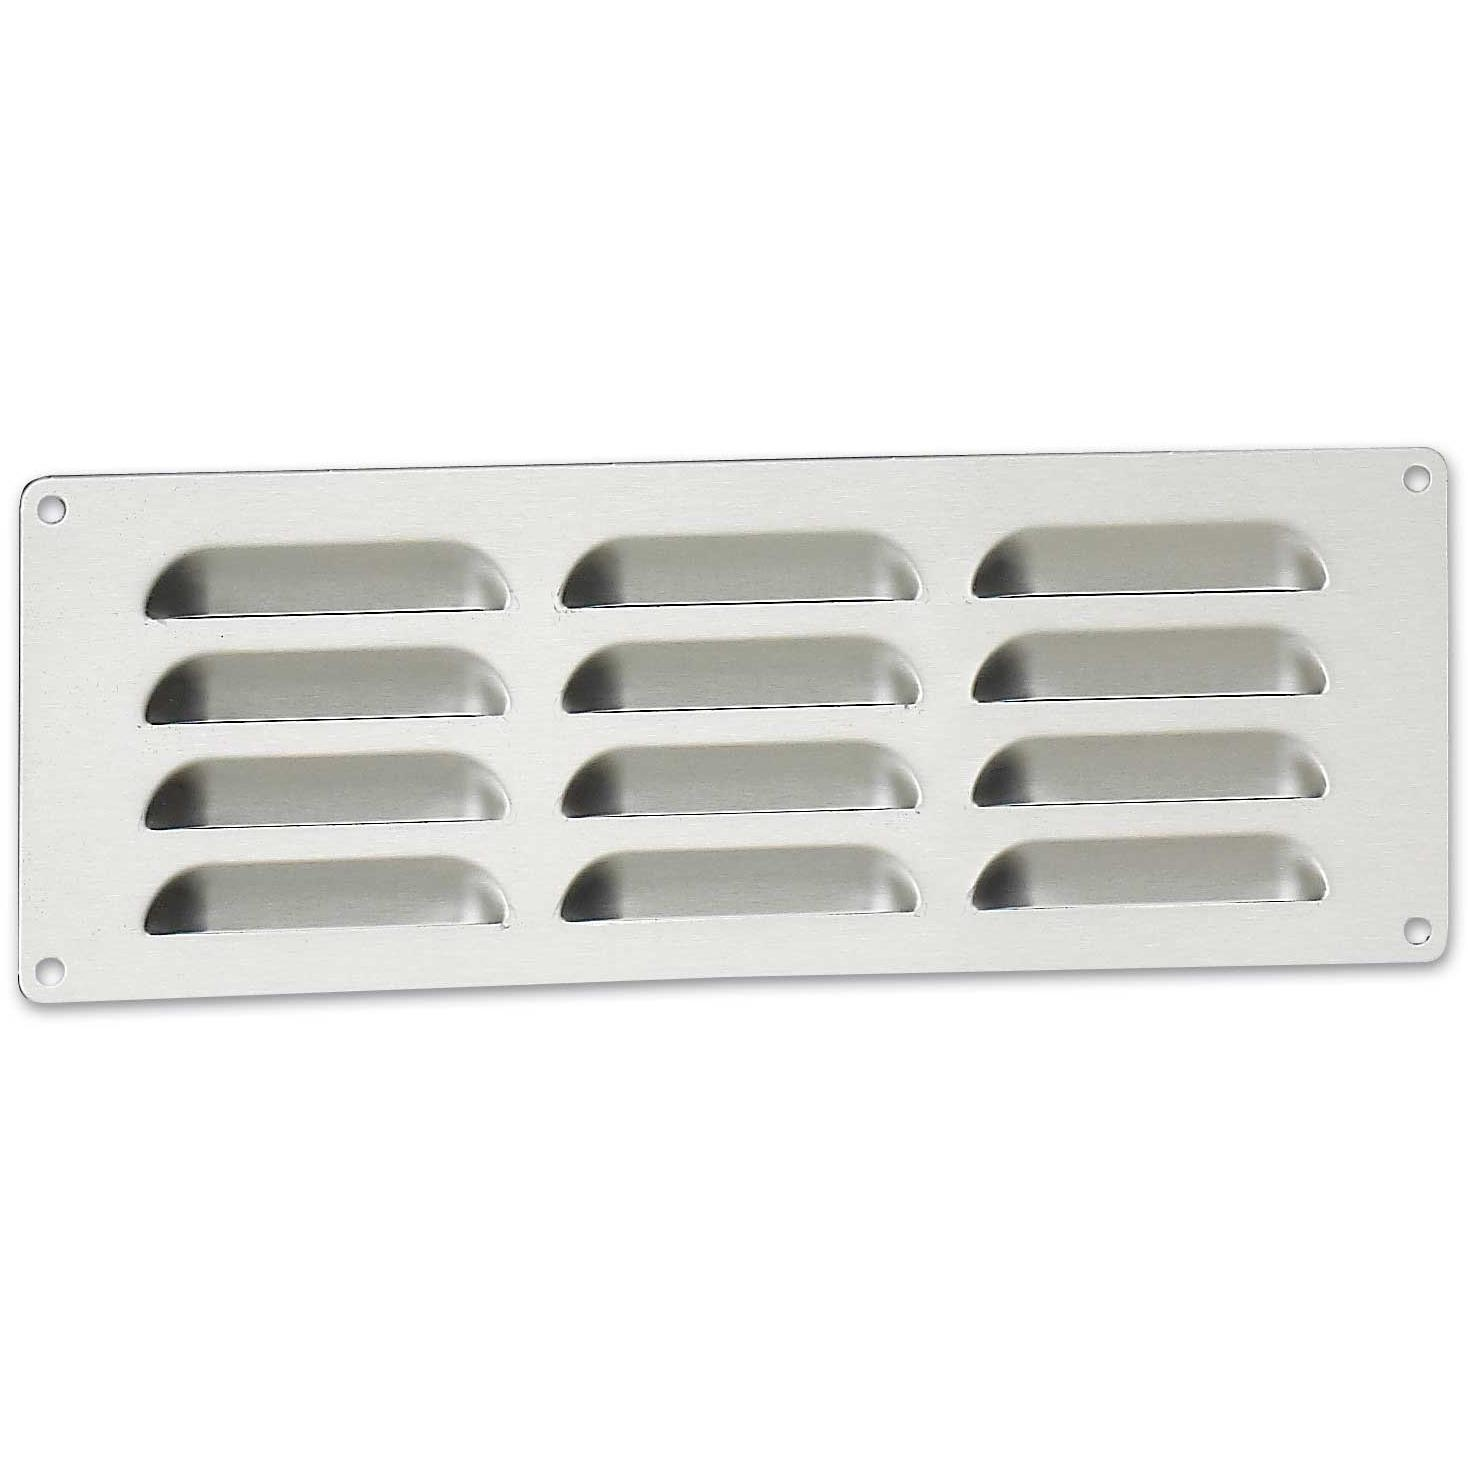 Fire Magic Legacy Louvered Stainless Steel Venting Panel 5510-01